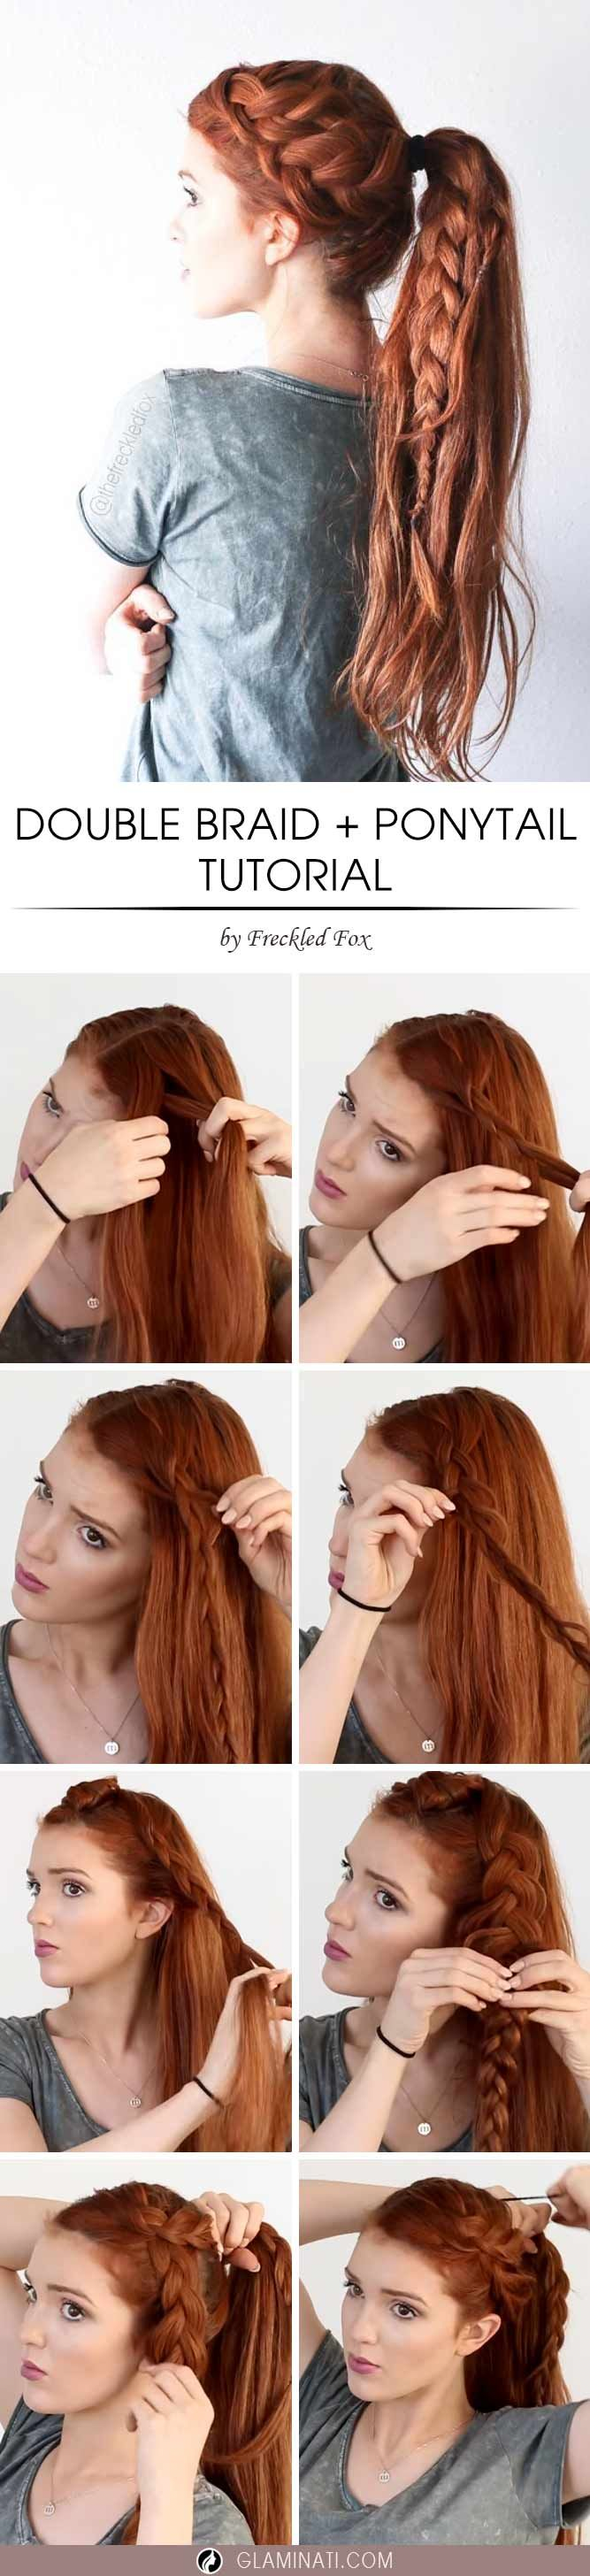 Hair Howto: Double French Braid With Ponytail